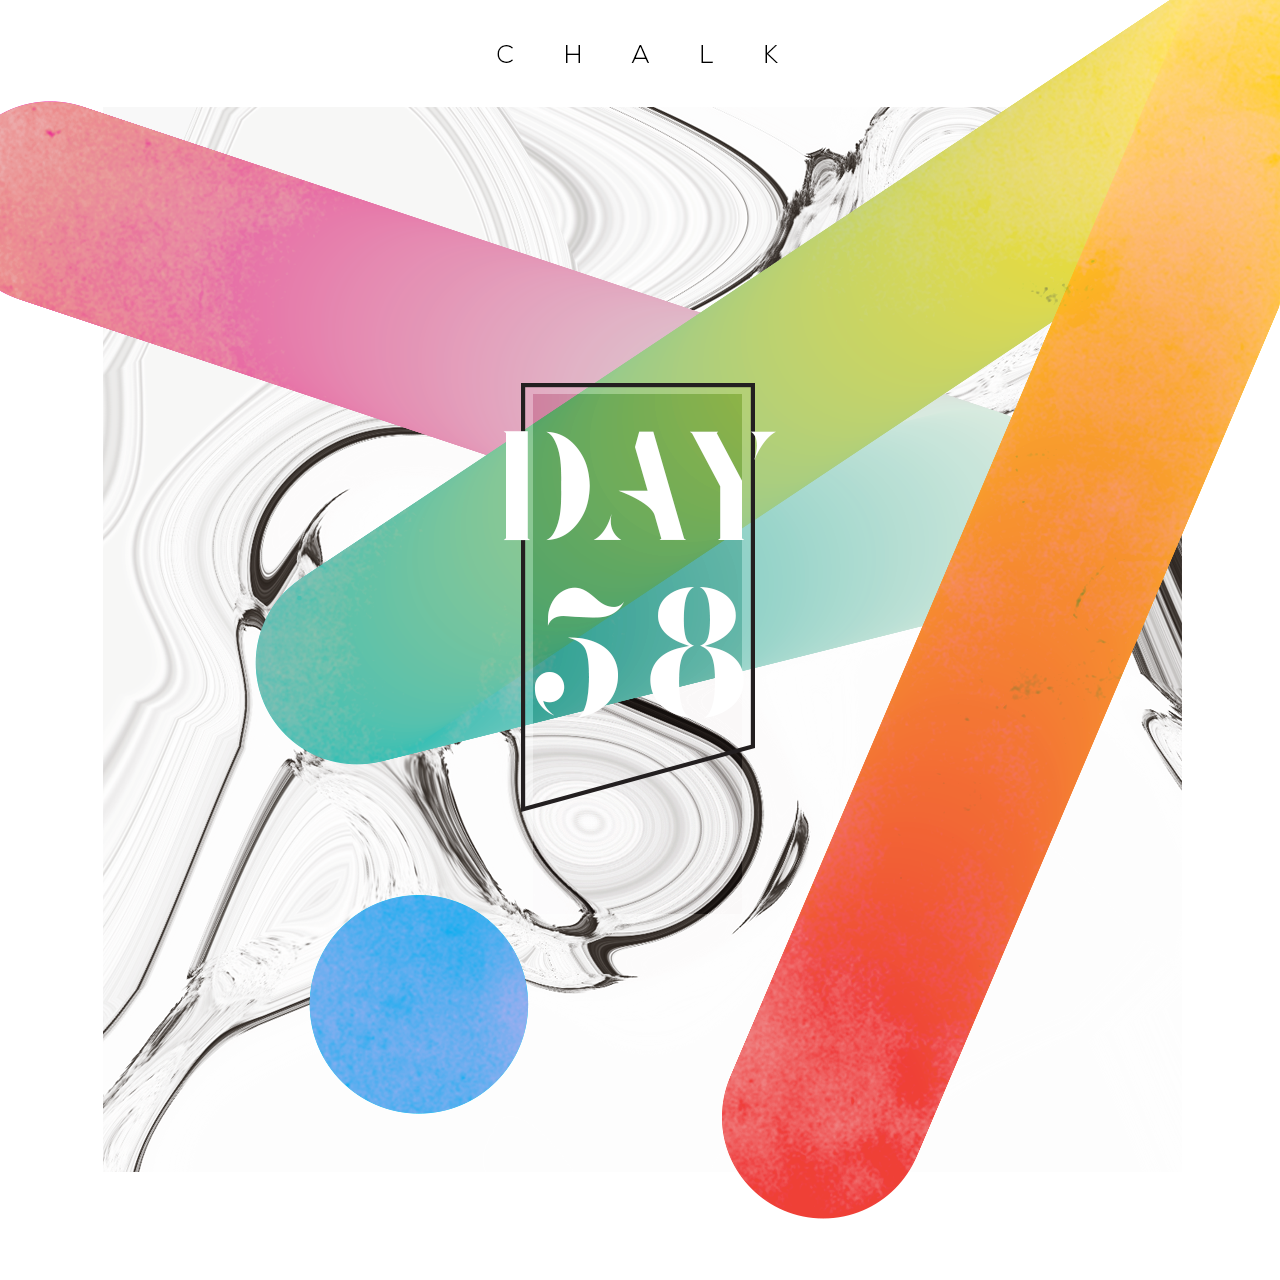 Day58.png